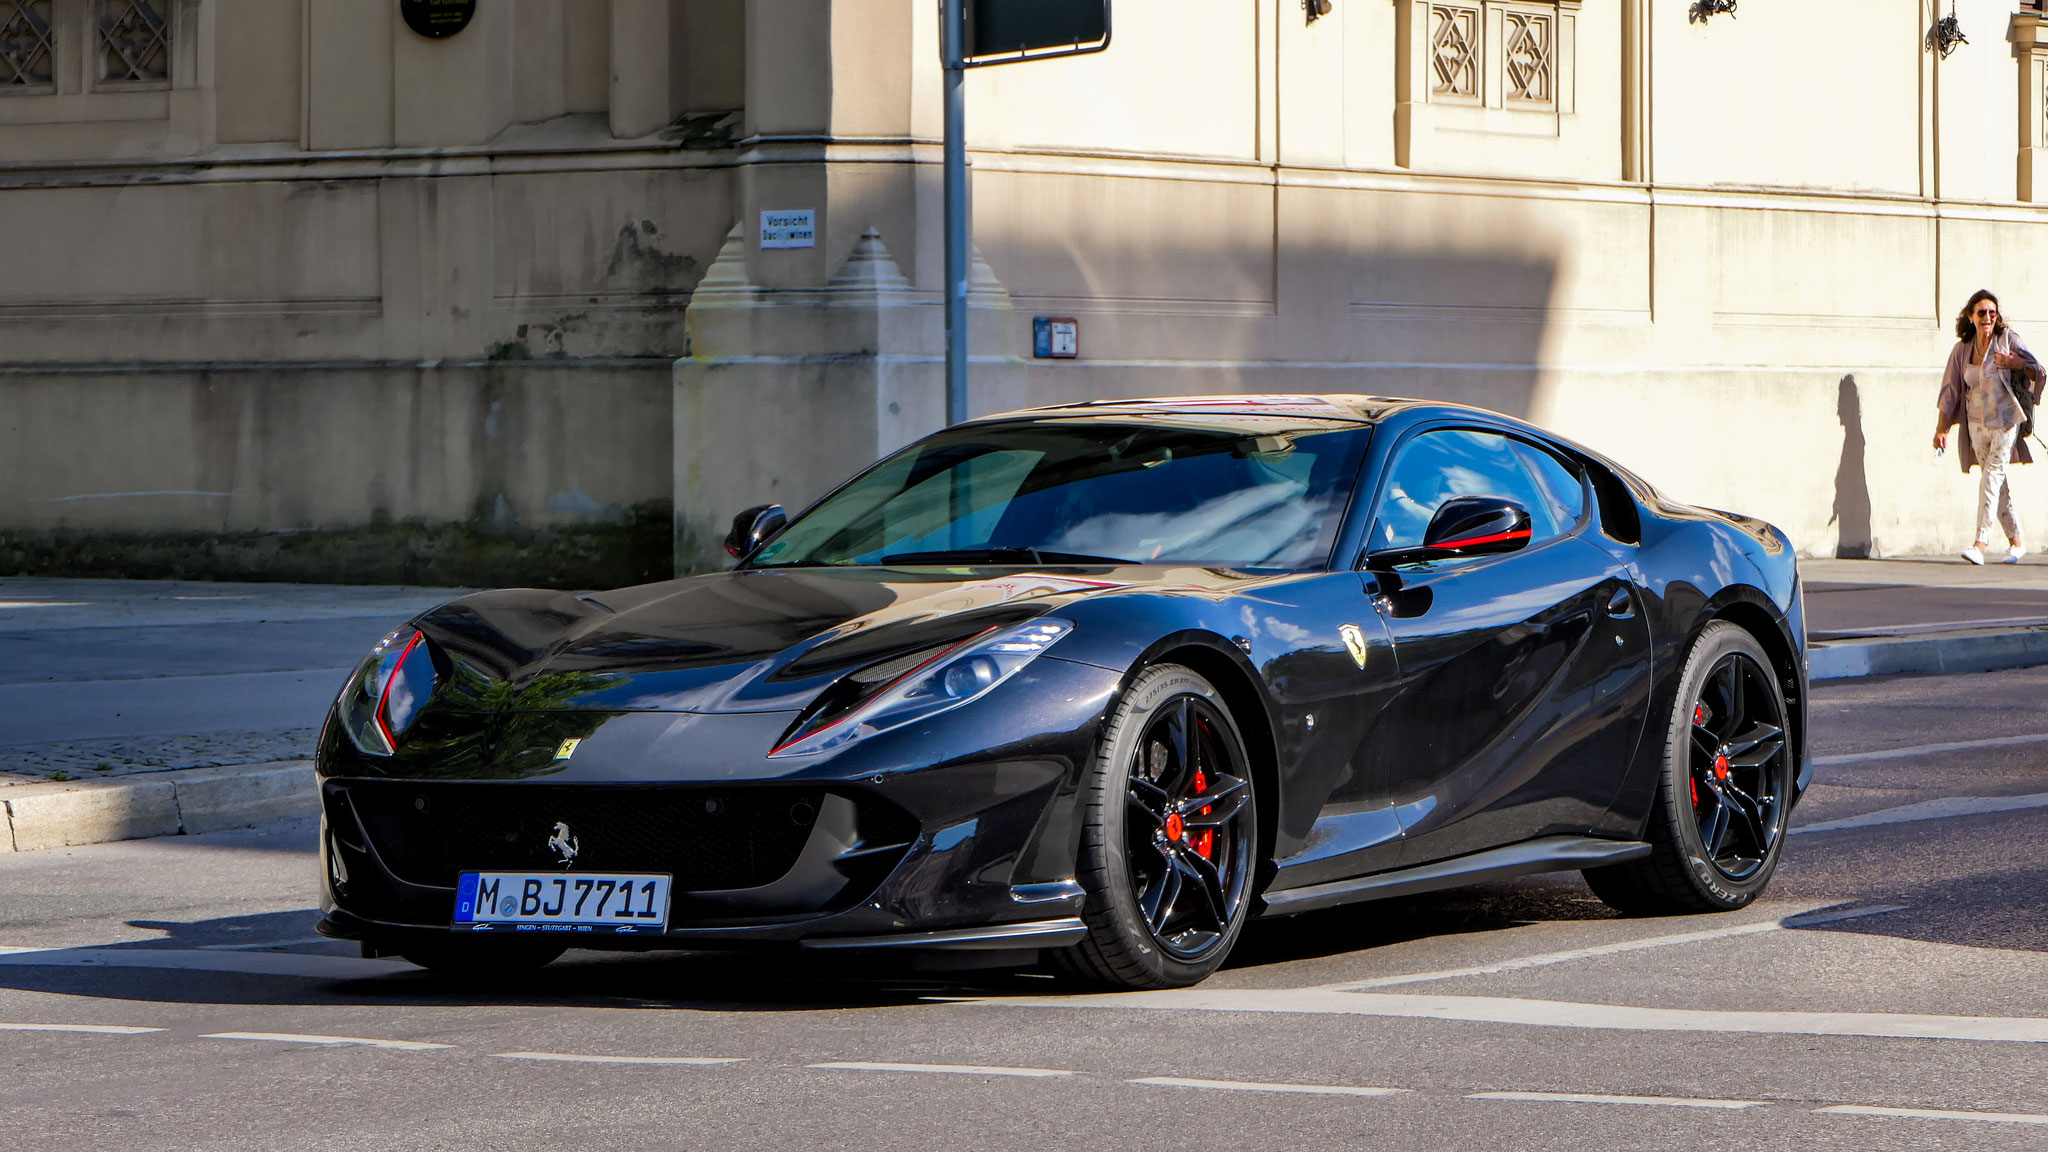 Ferrari 812 Superfast - M-BJ-7711